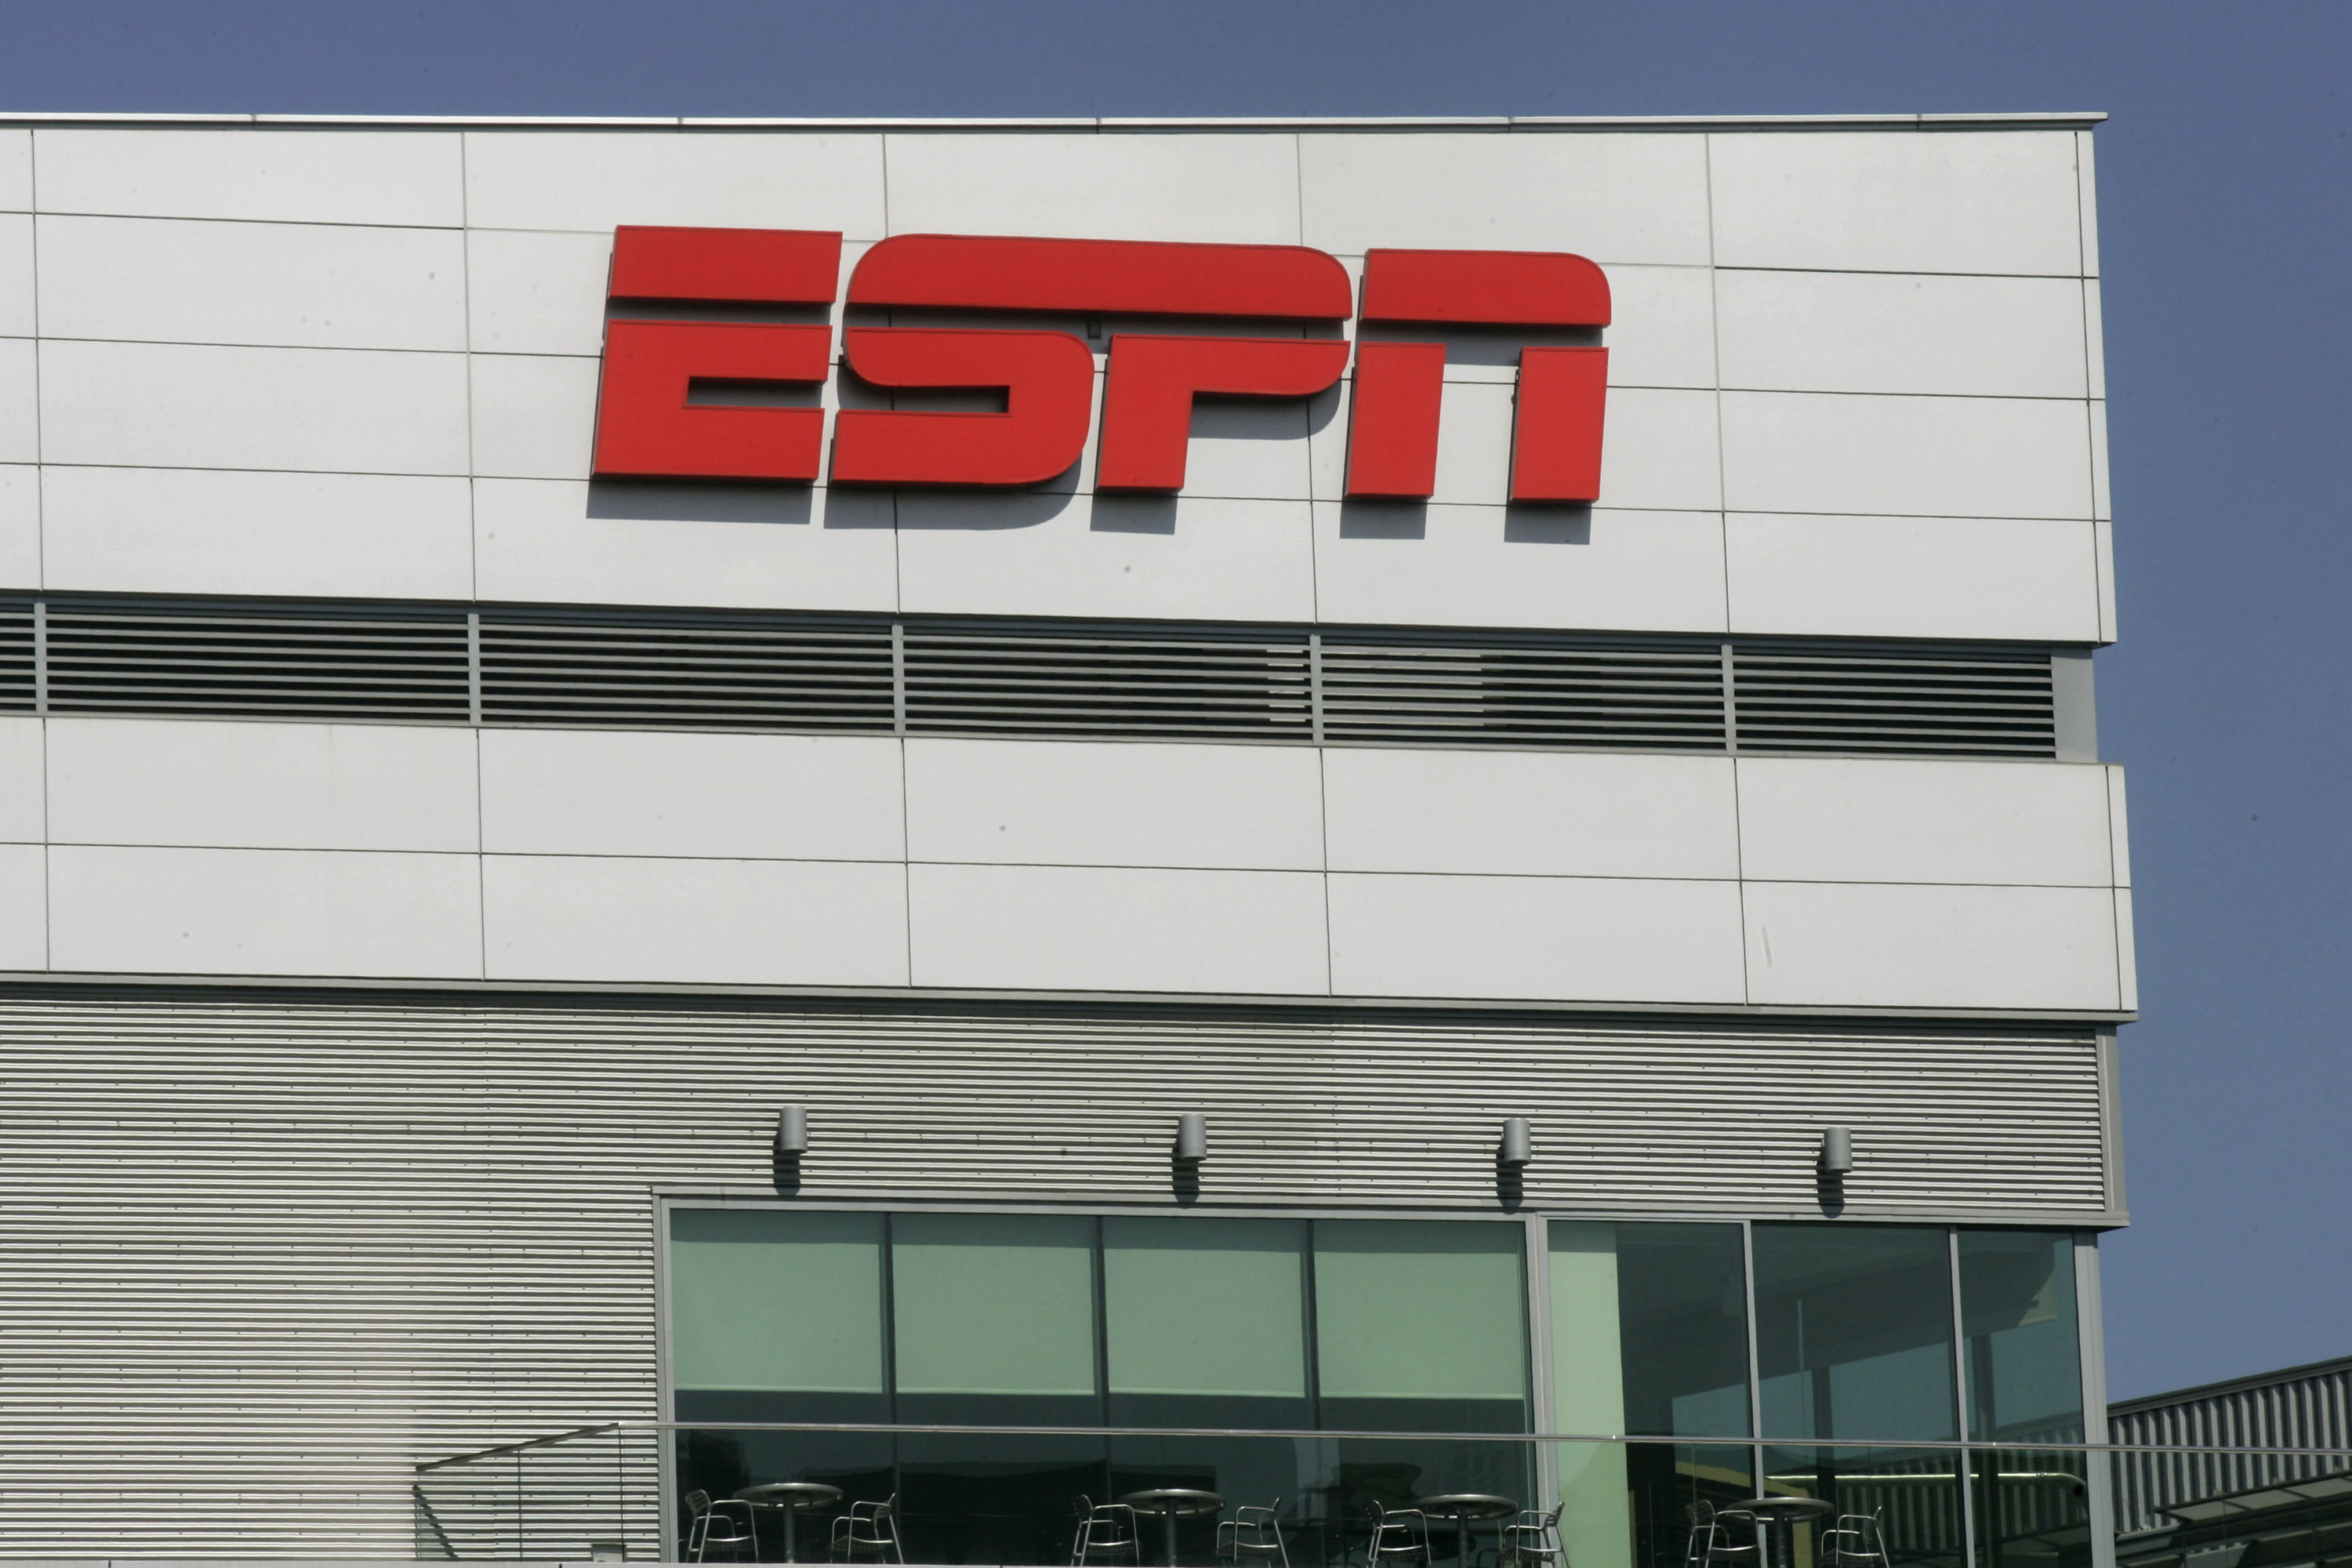 The ESPN logo is displayed outside L.A. Live, which houses the ESPNZone, in Los Angeles, California, U.S., on Tuesday, Aug. 31, 2010.